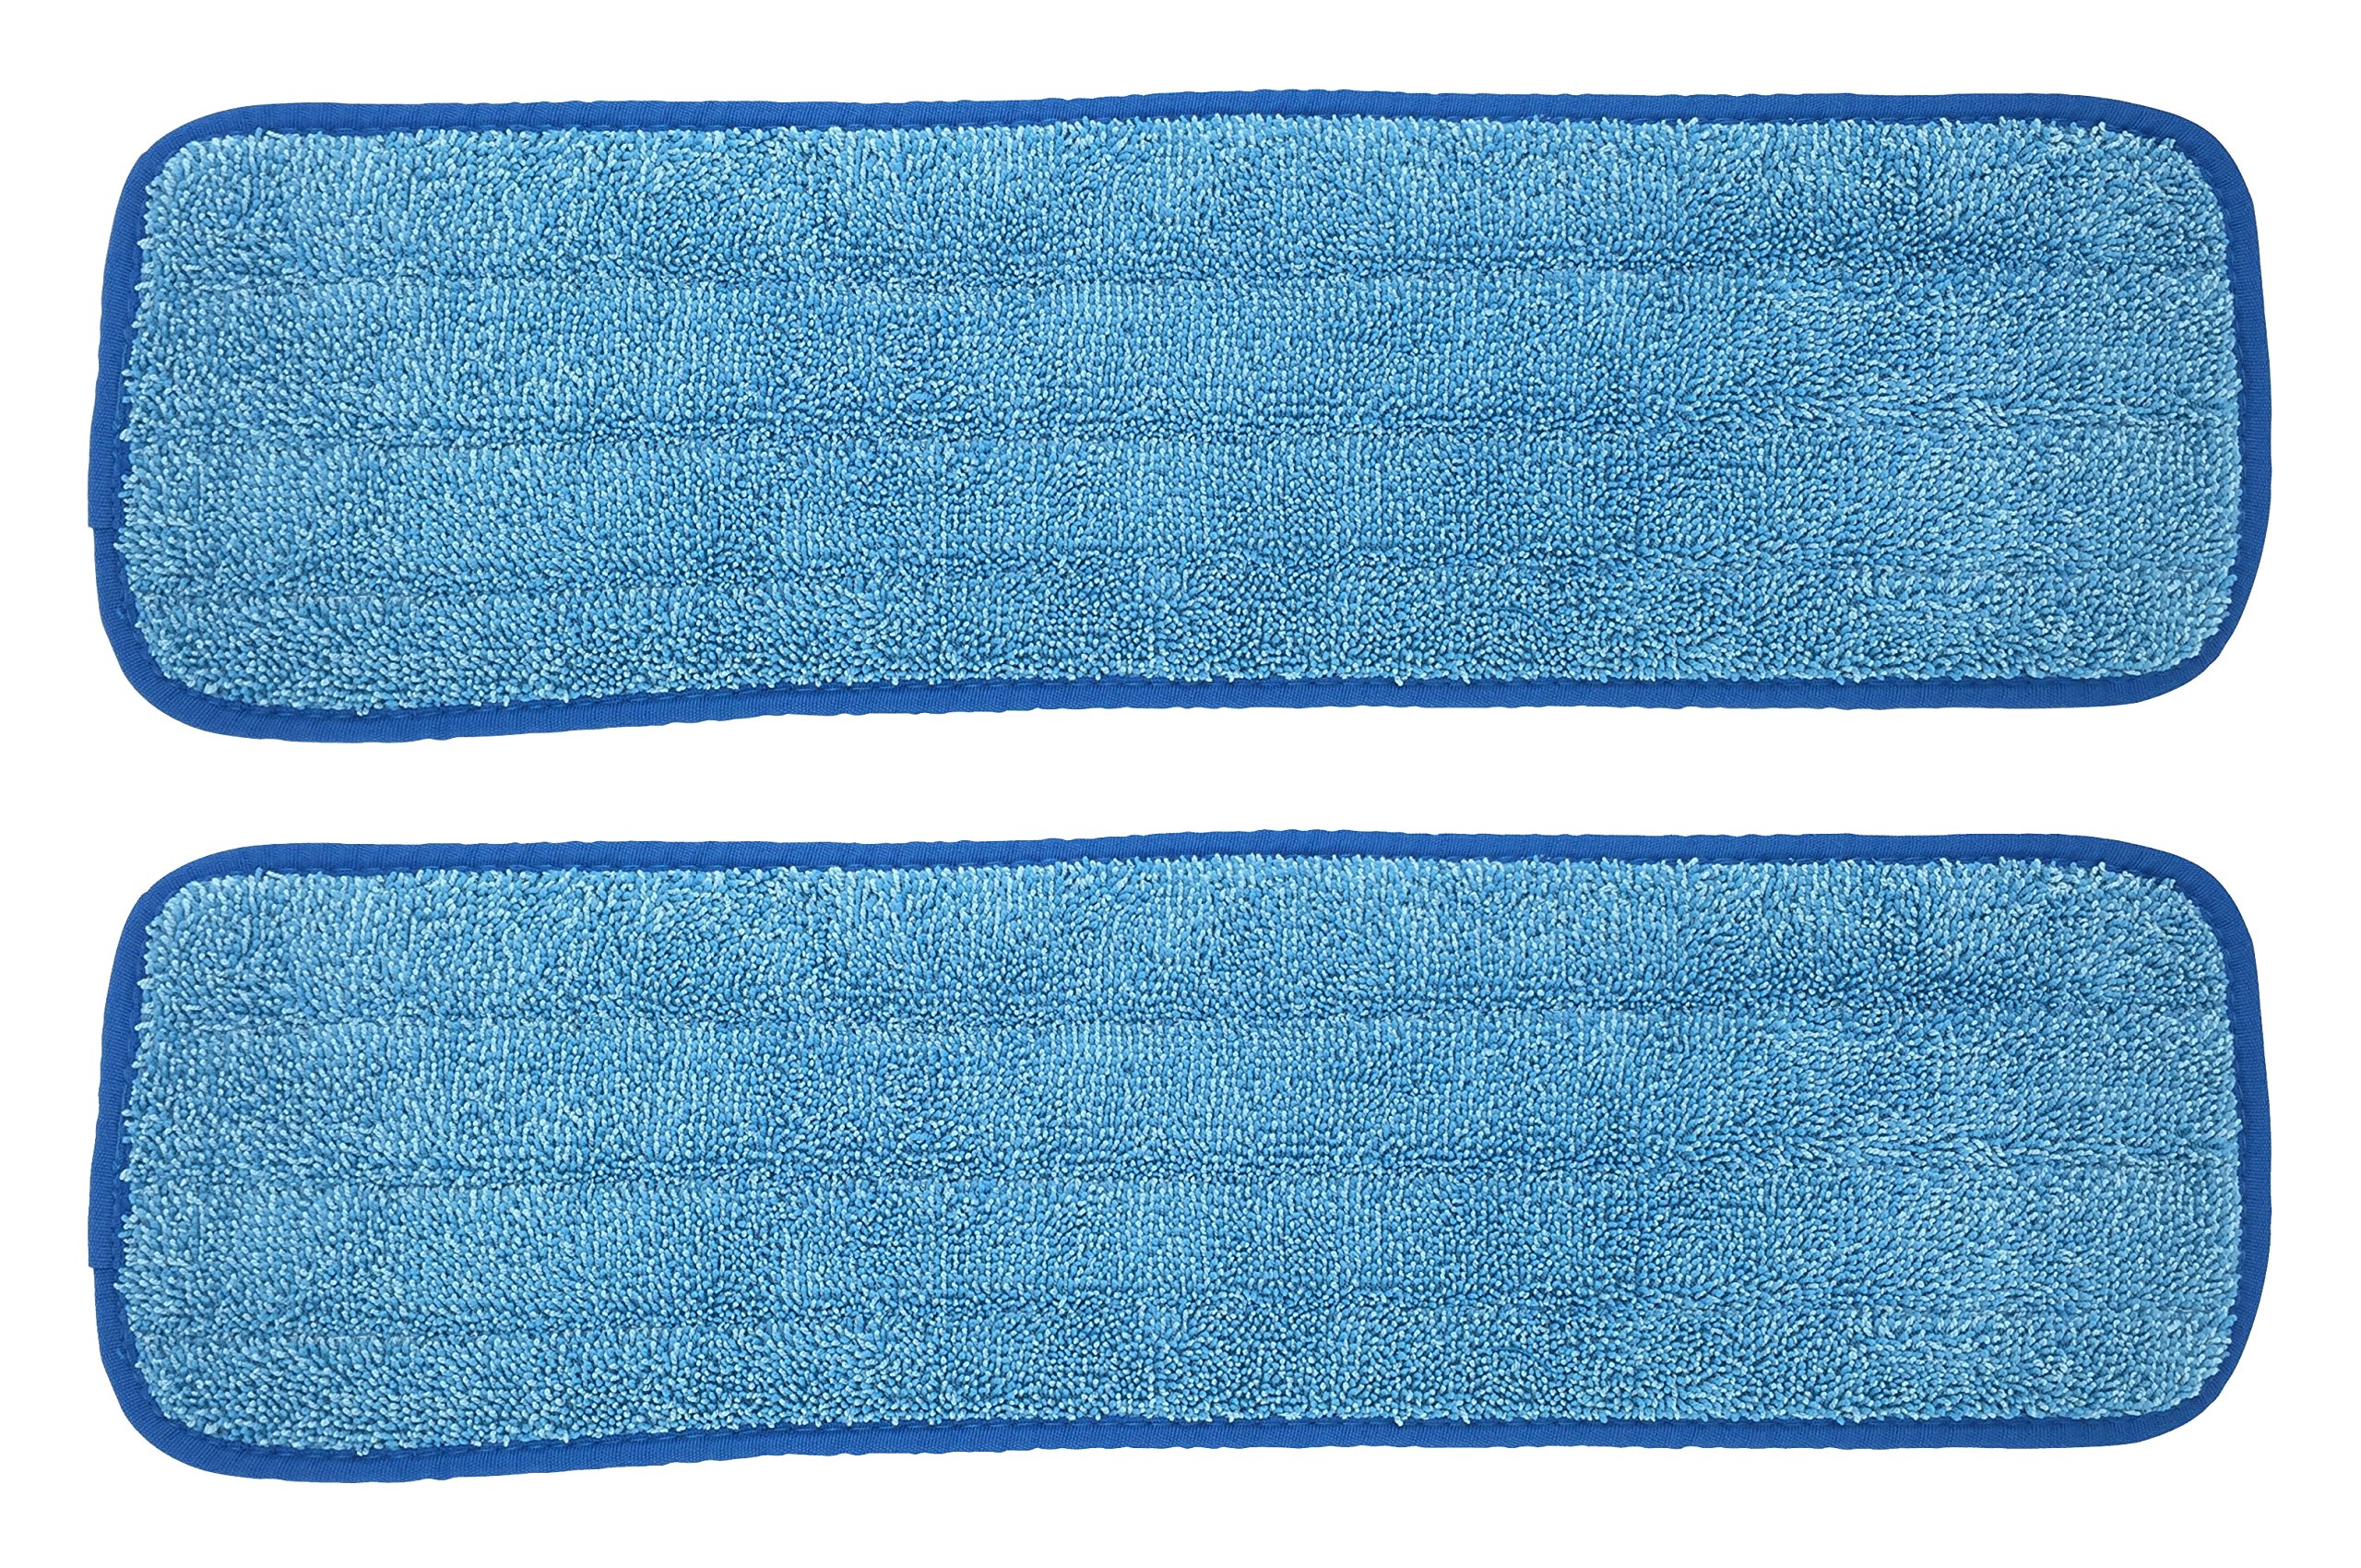 Xanitize Microfiber Replacement Mop Pad, Wet & Dry Home & Commercial Cleaning Refills - Fits 18 and 20 (2-pack)